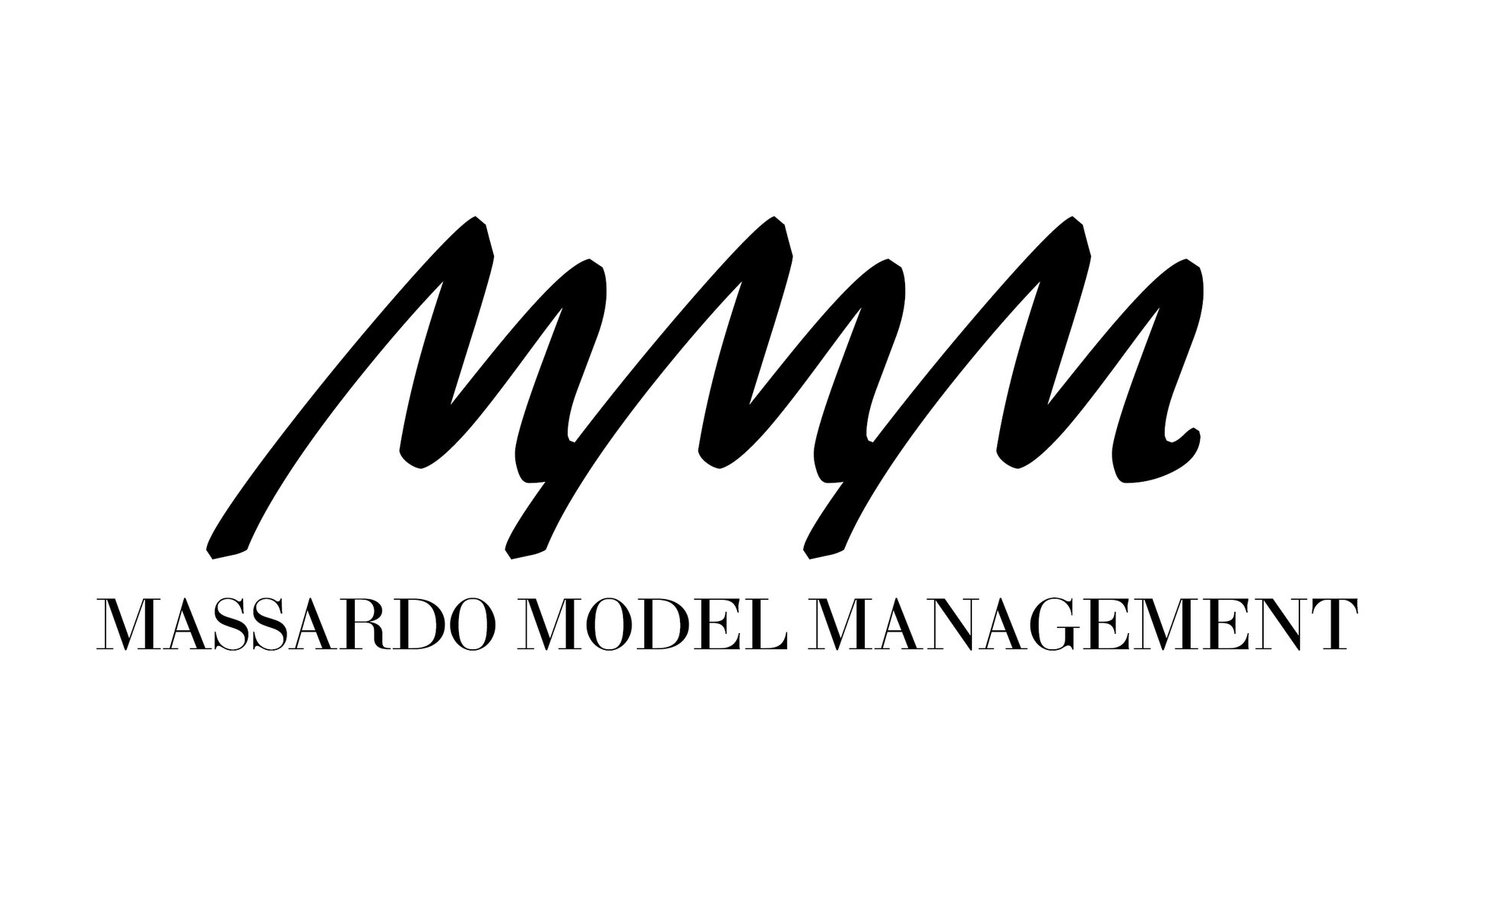 MASSARDO MODEL MANAGEMENT